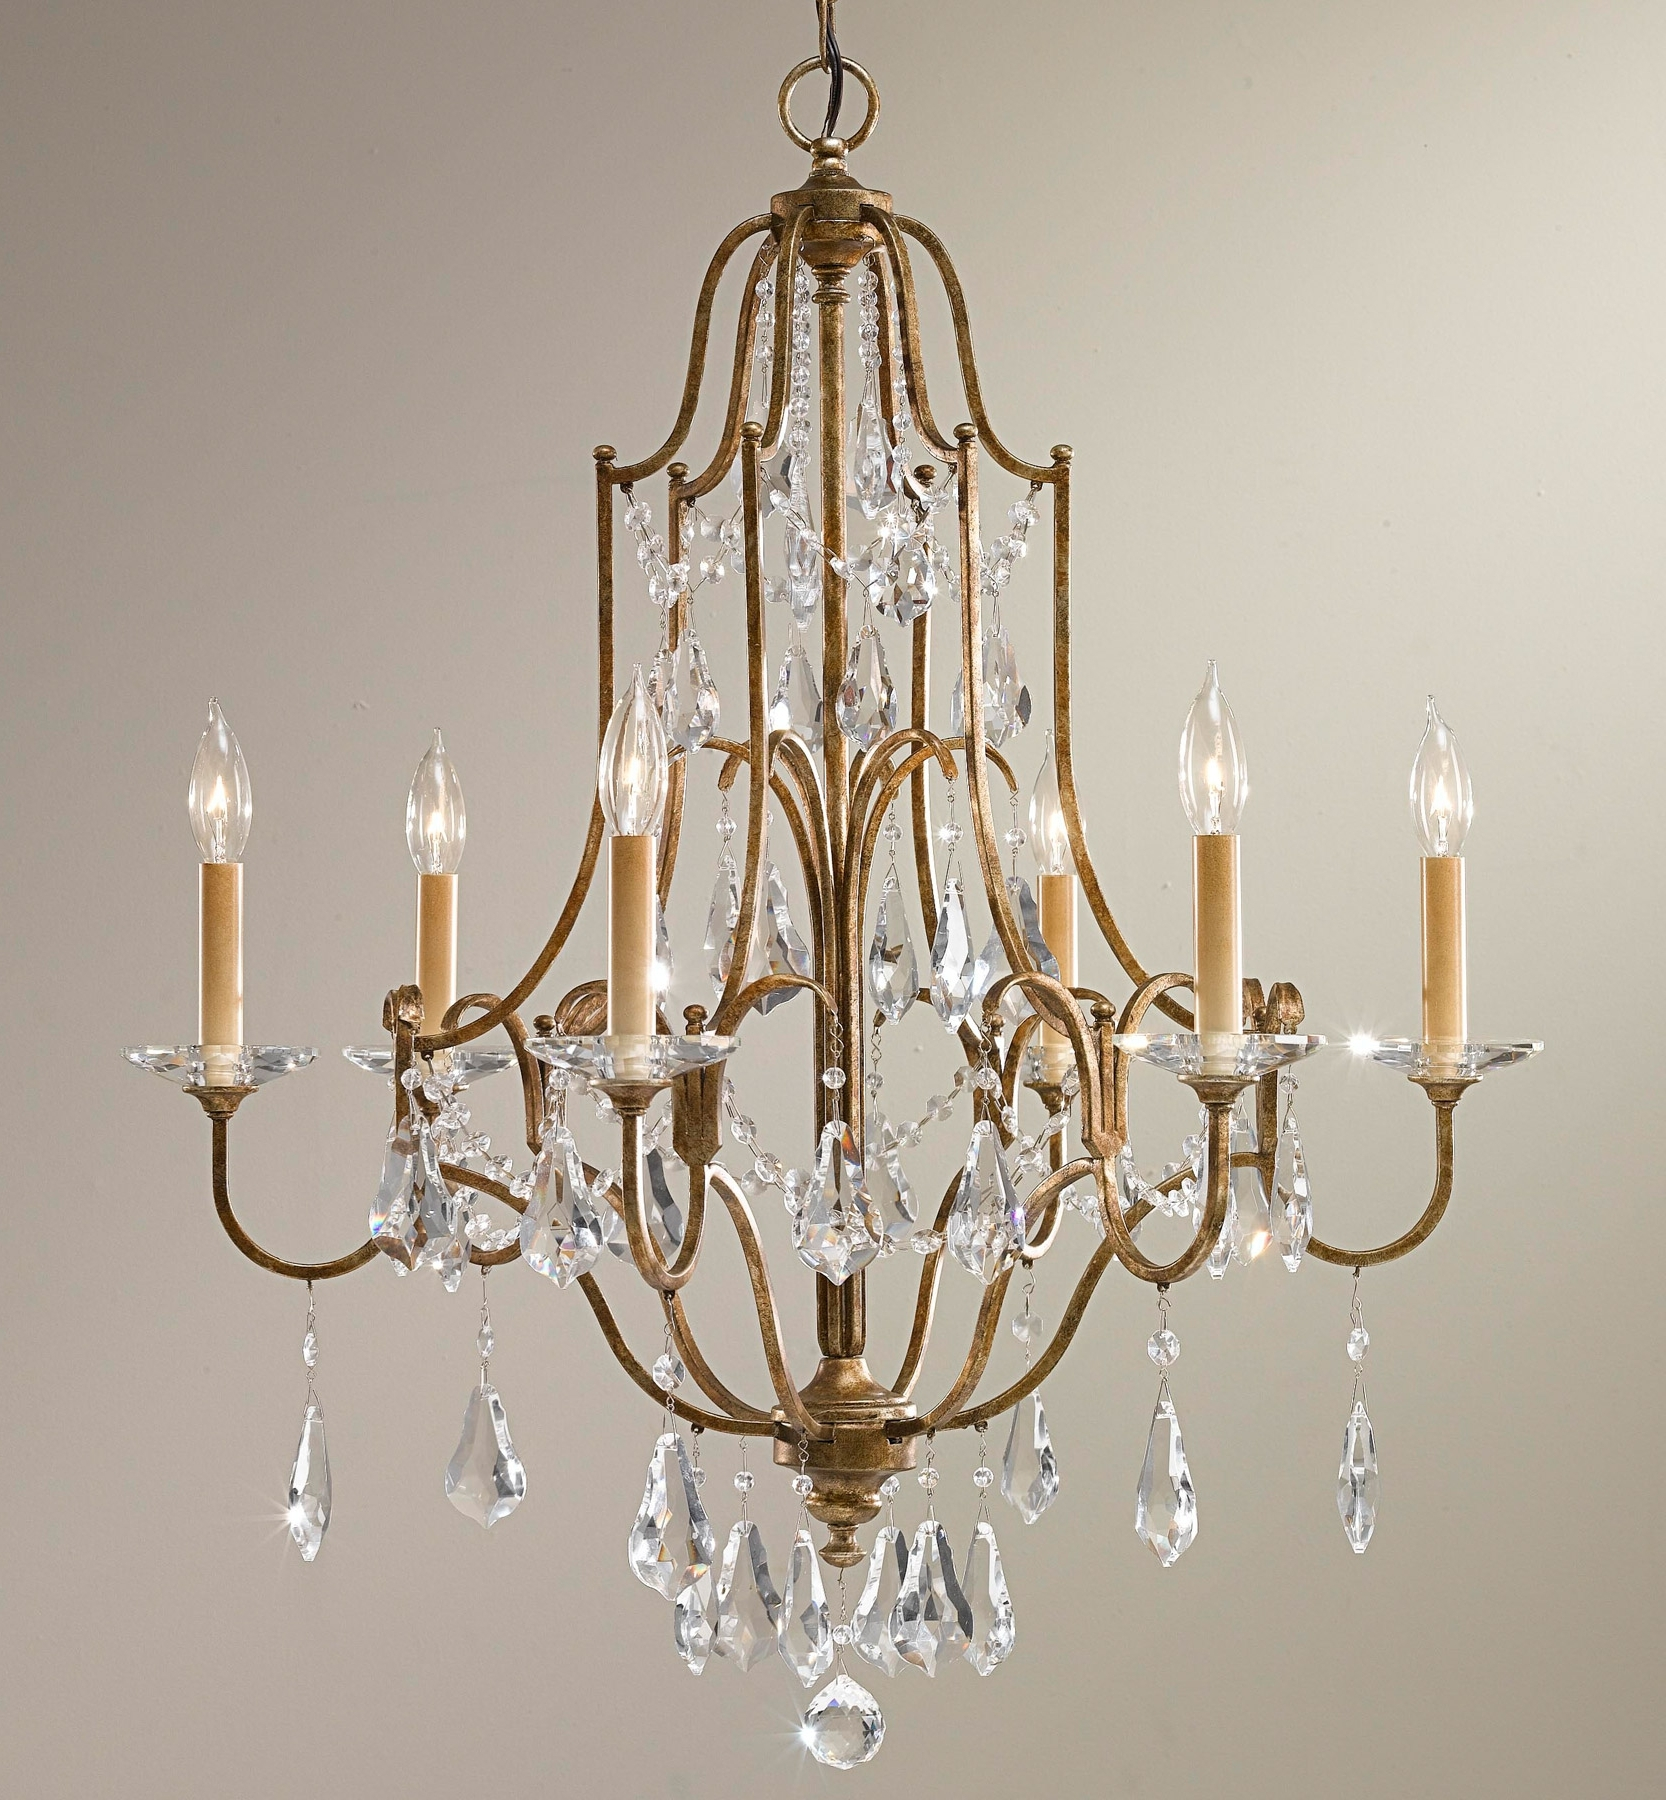 Latest Feiss F2478/6Obz Crystal Valentina Six Light Chandelier For Feiss Chandeliers (View 10 of 20)